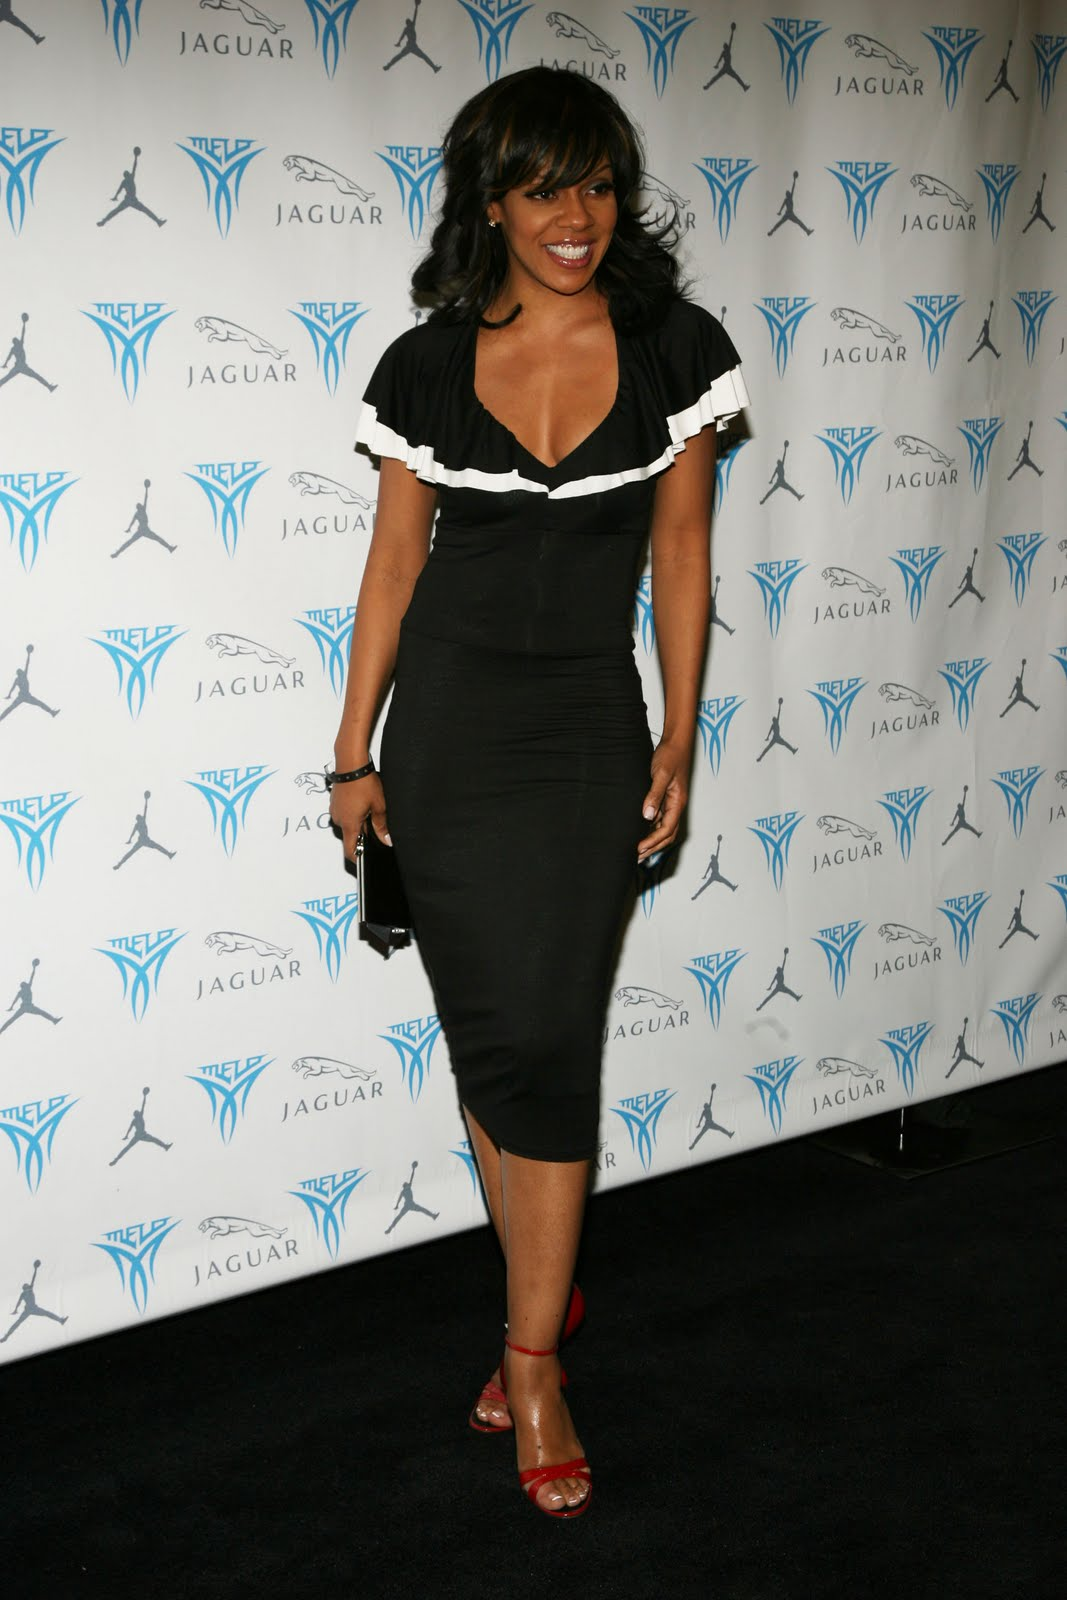 Wendy raquel robinson nude images pity, that